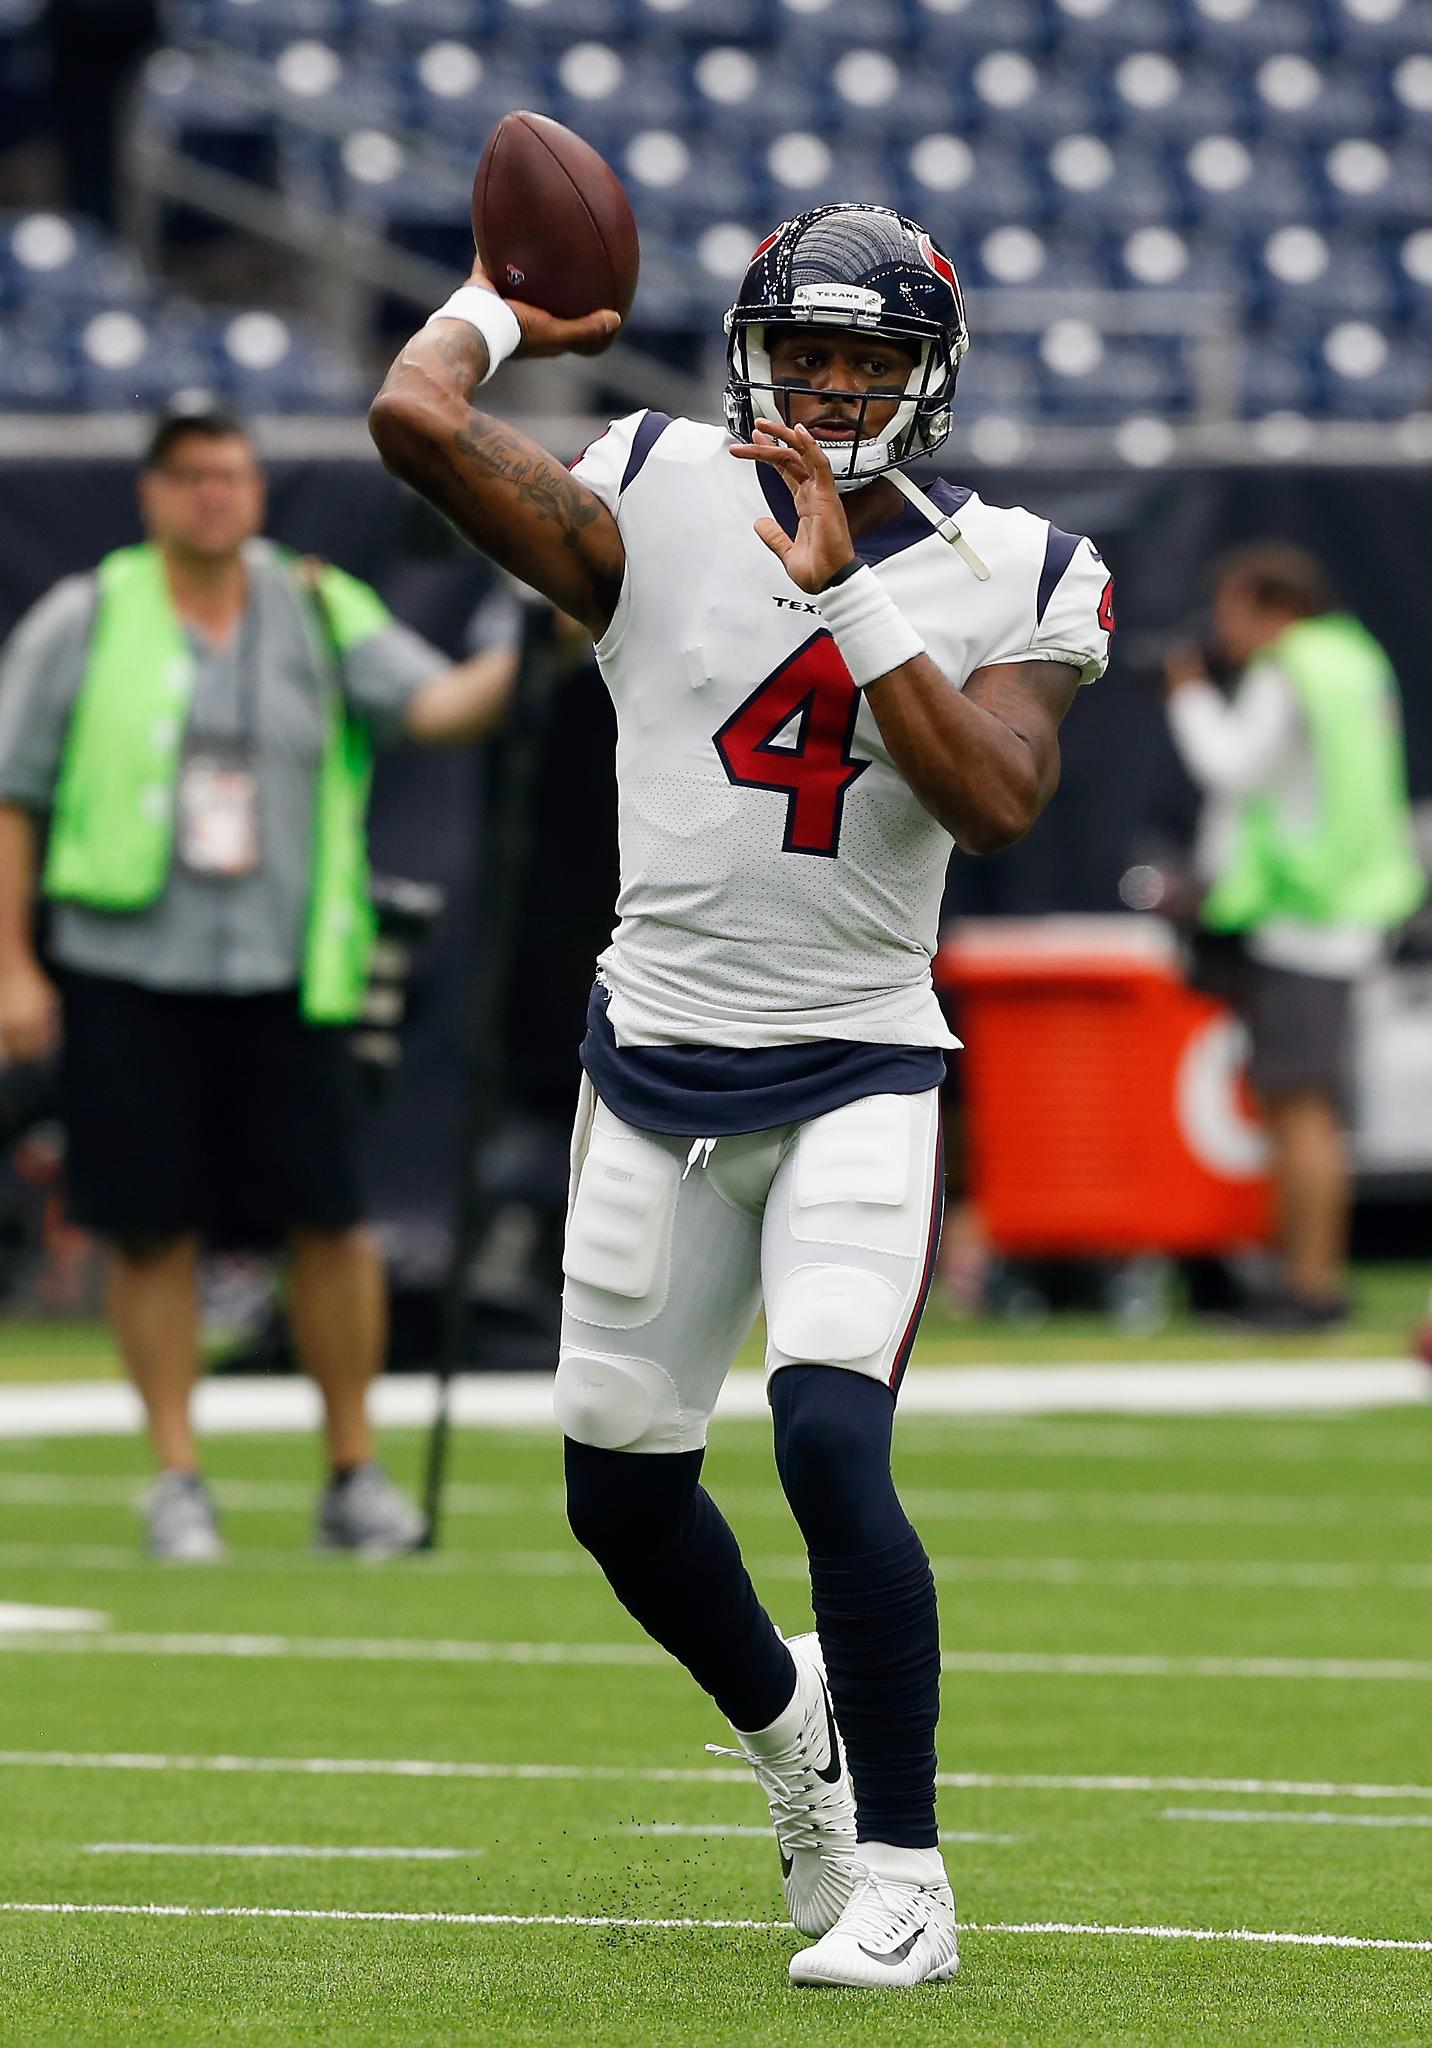 Now in at QB for the Texans: Deshaun Watson https://t.co/2kFVRvB35X